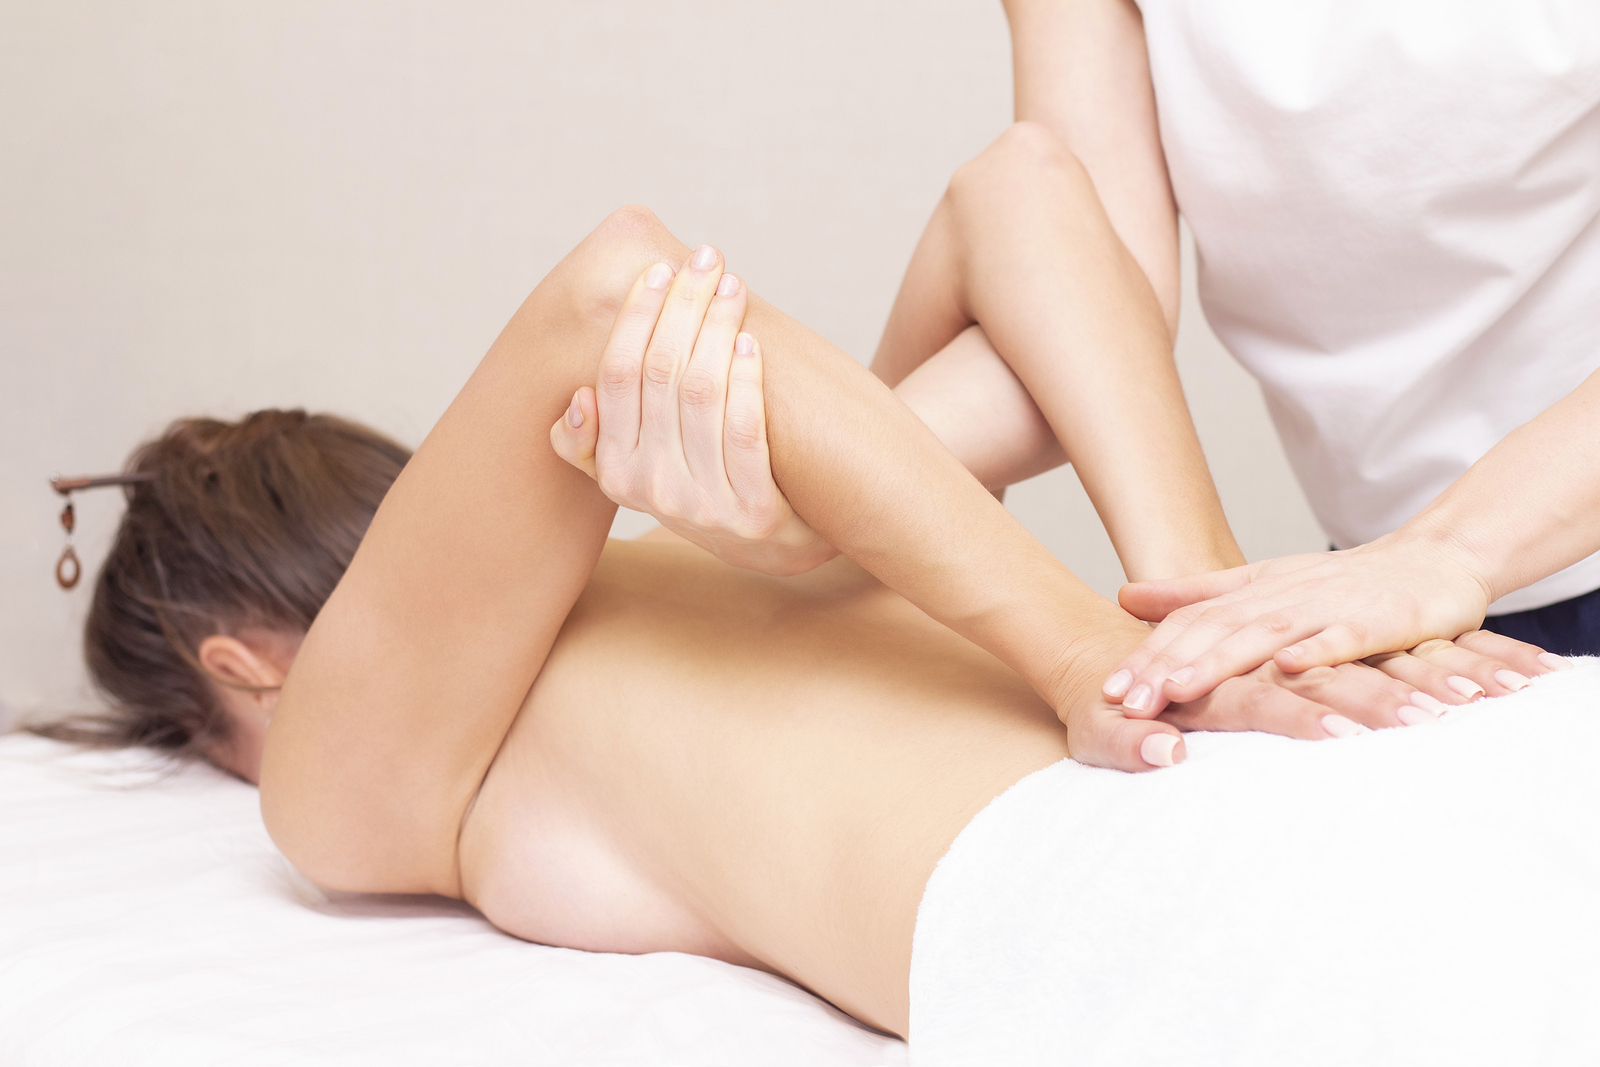 Massage and body care. Spa woman body massage with hands treatment. Stretching the back muscles. Woman having massage at the spa for beautiful girl